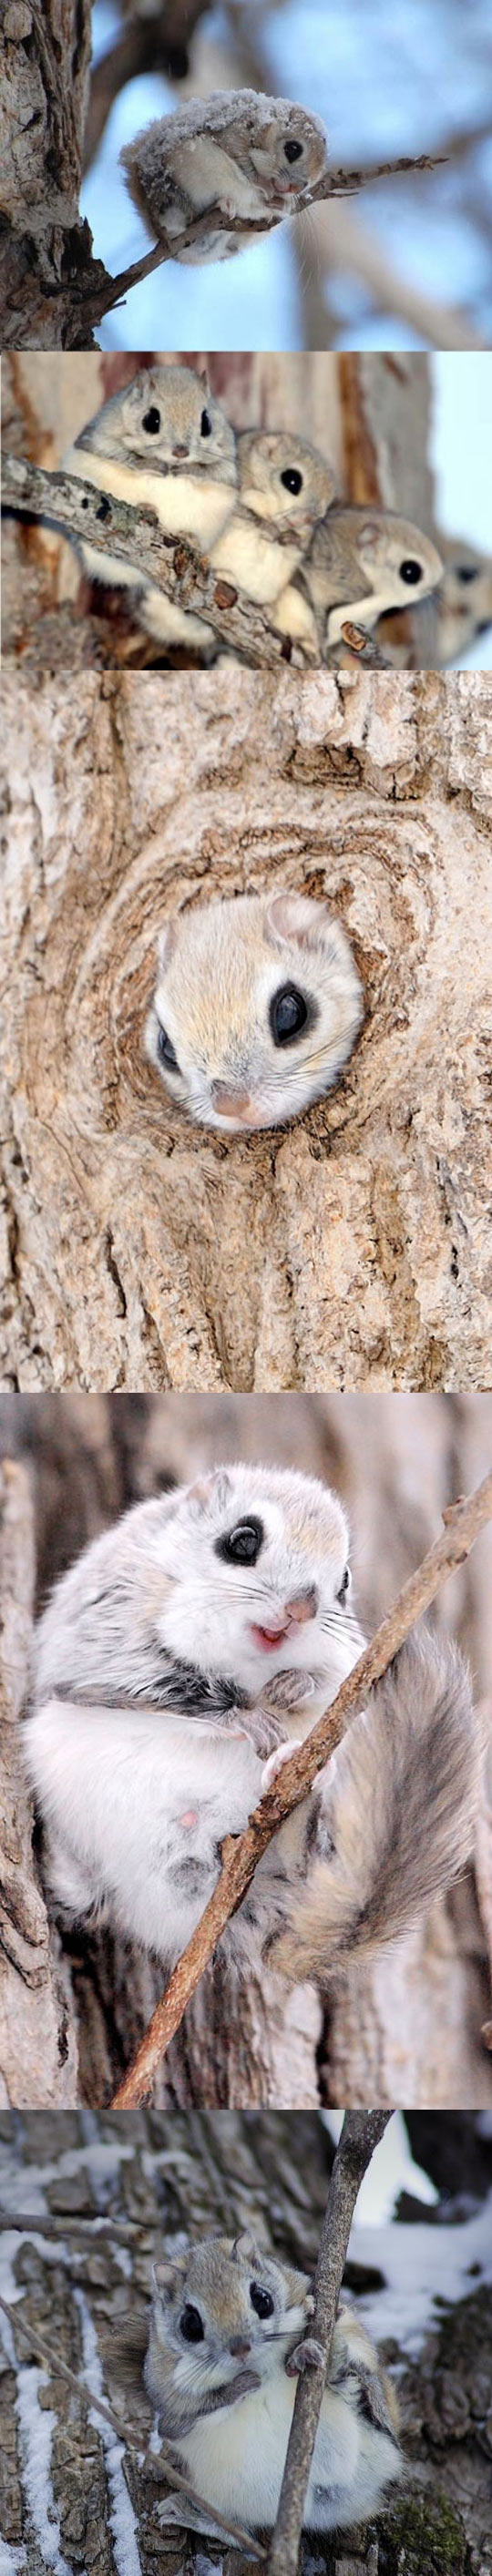 i don't know what they are, but i need one, cute animal